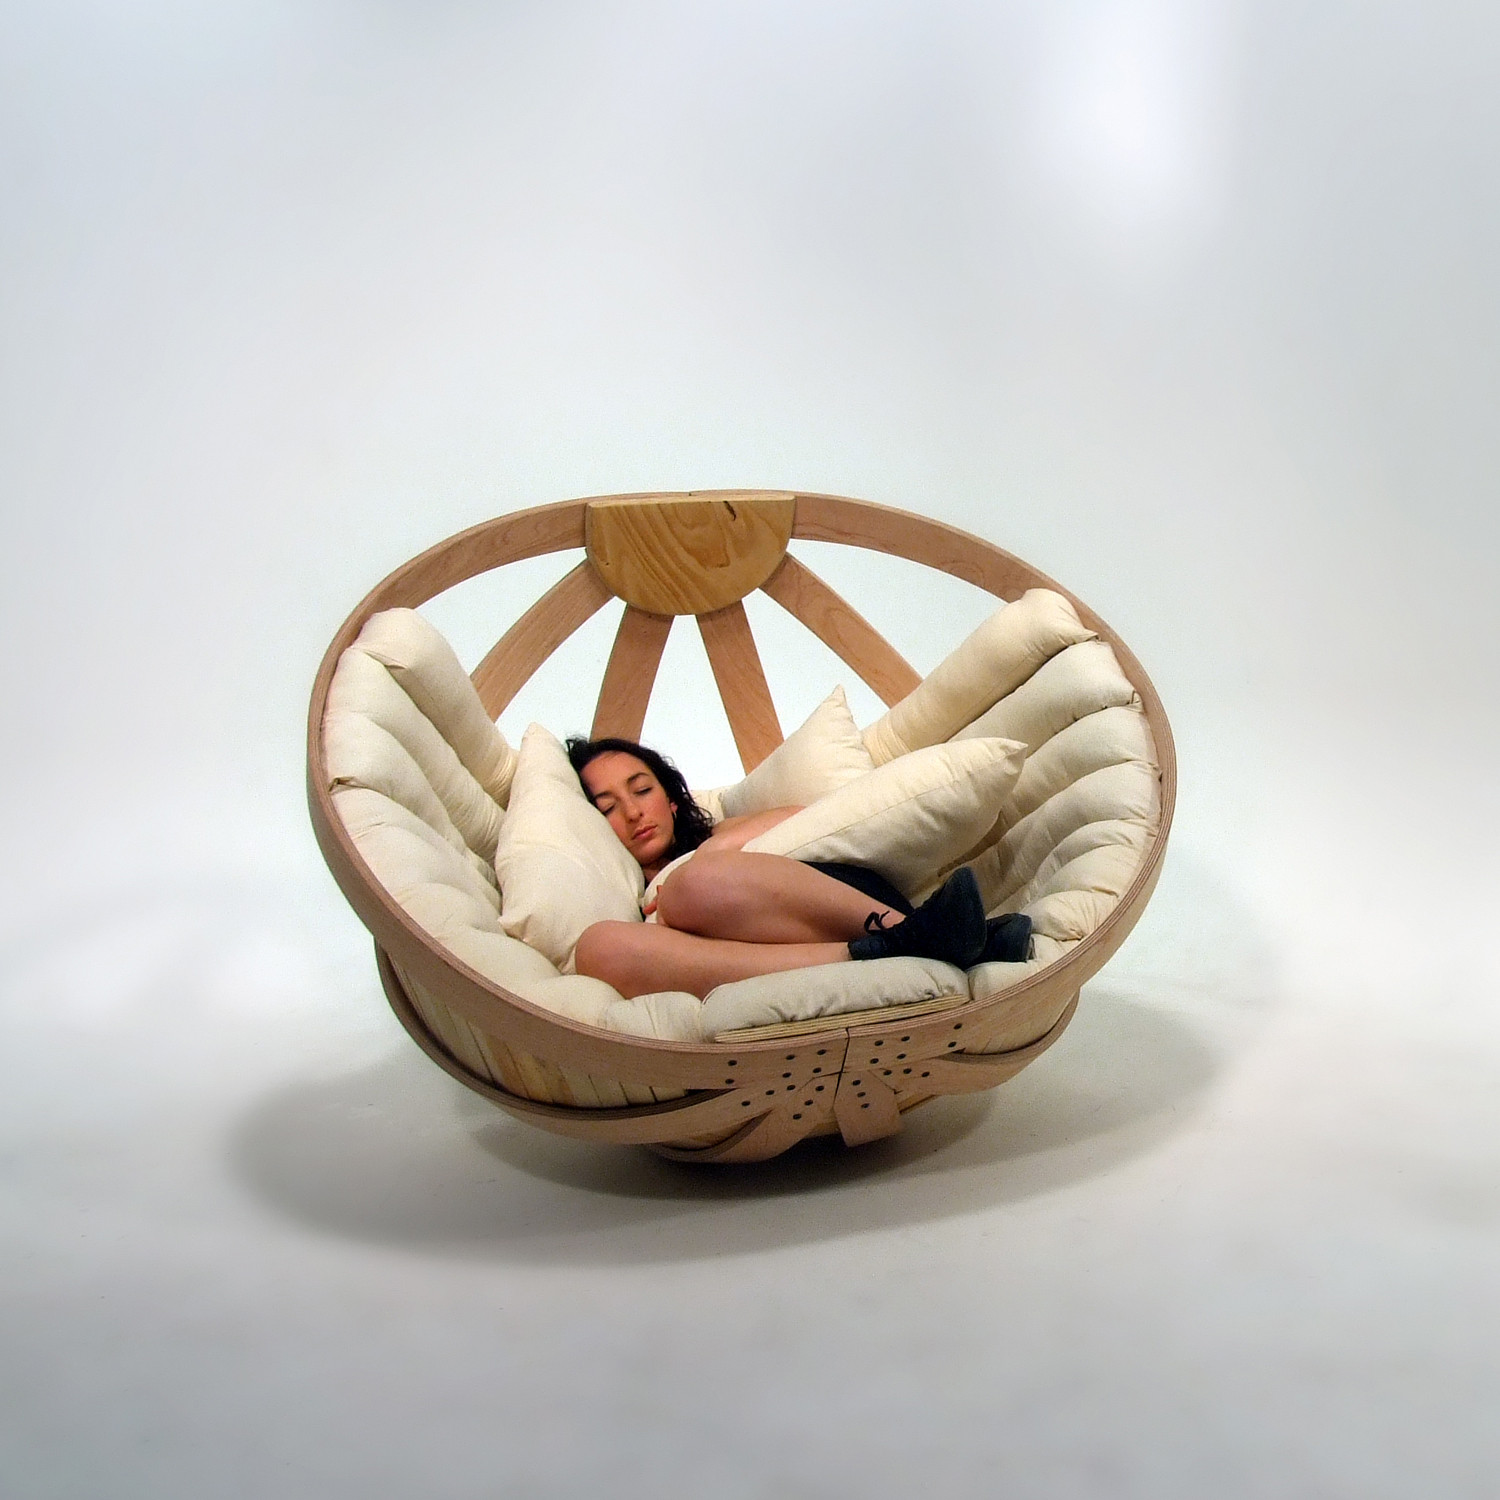 Cradle chair clarkson design touch of modern for What is touchofmodern